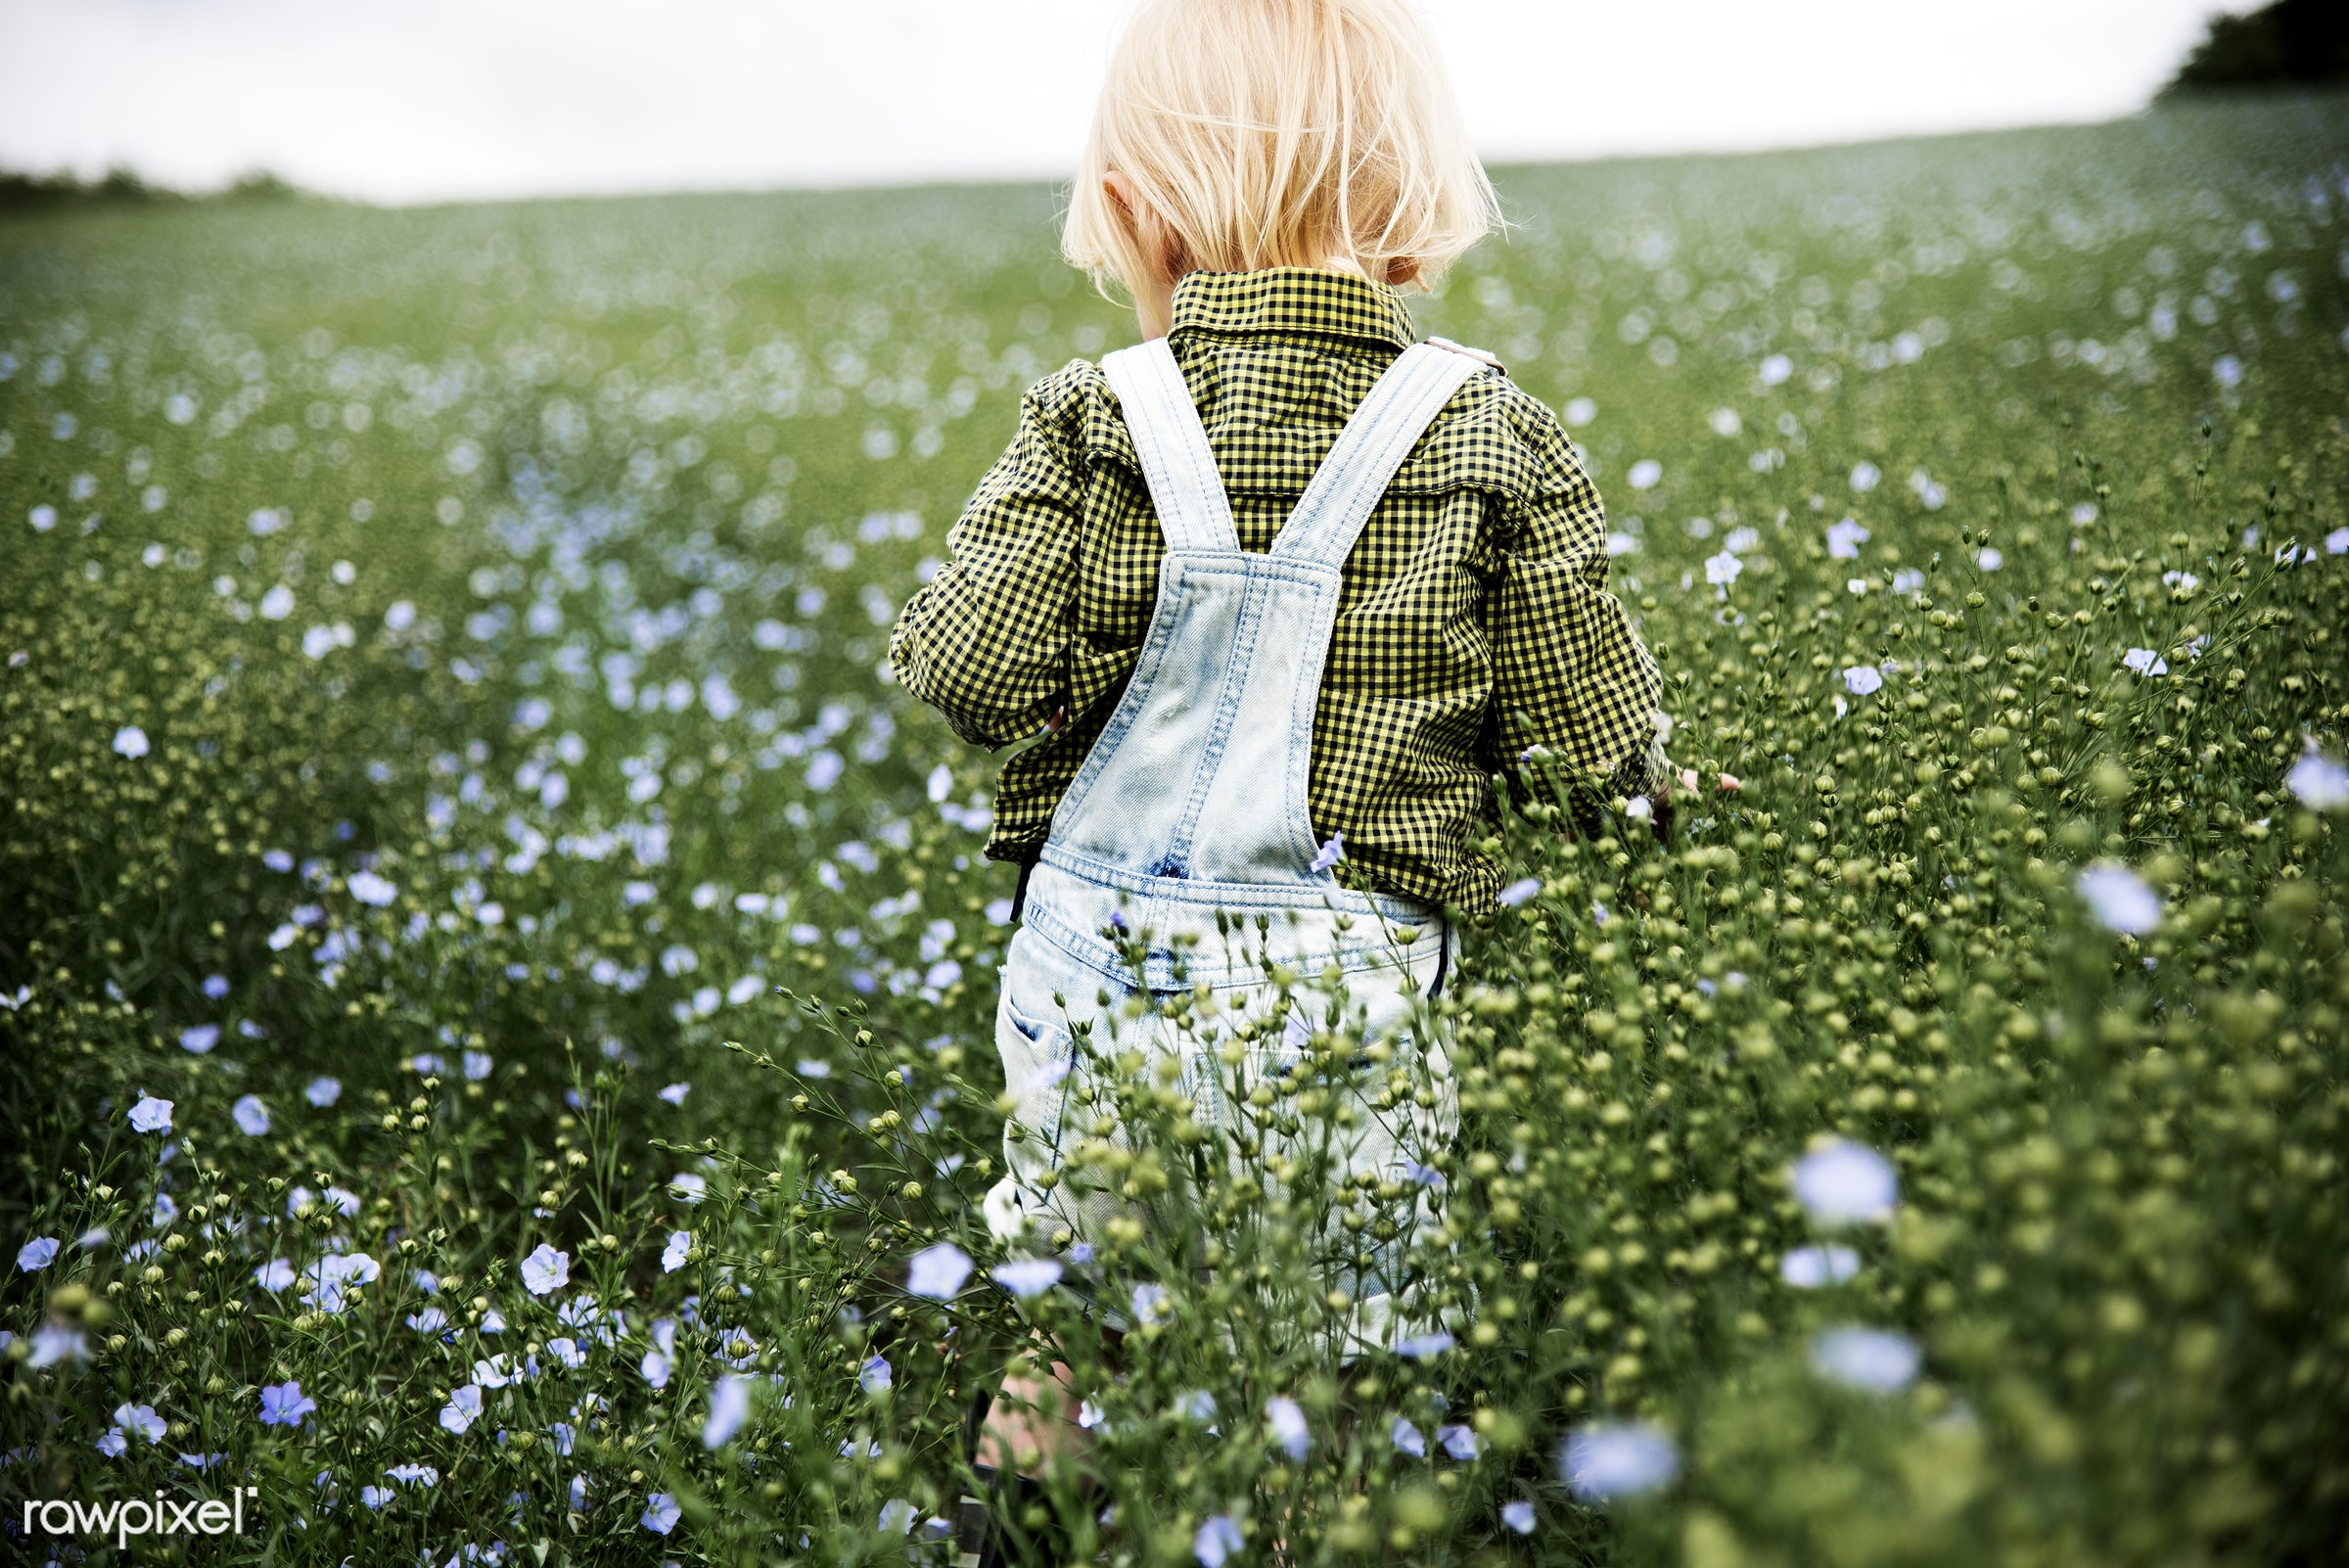 Kid in the garden - nature, purple, toddler, alone, backyard, bloom, blooming, blue, botanical, botany, boy, cheerful, child...